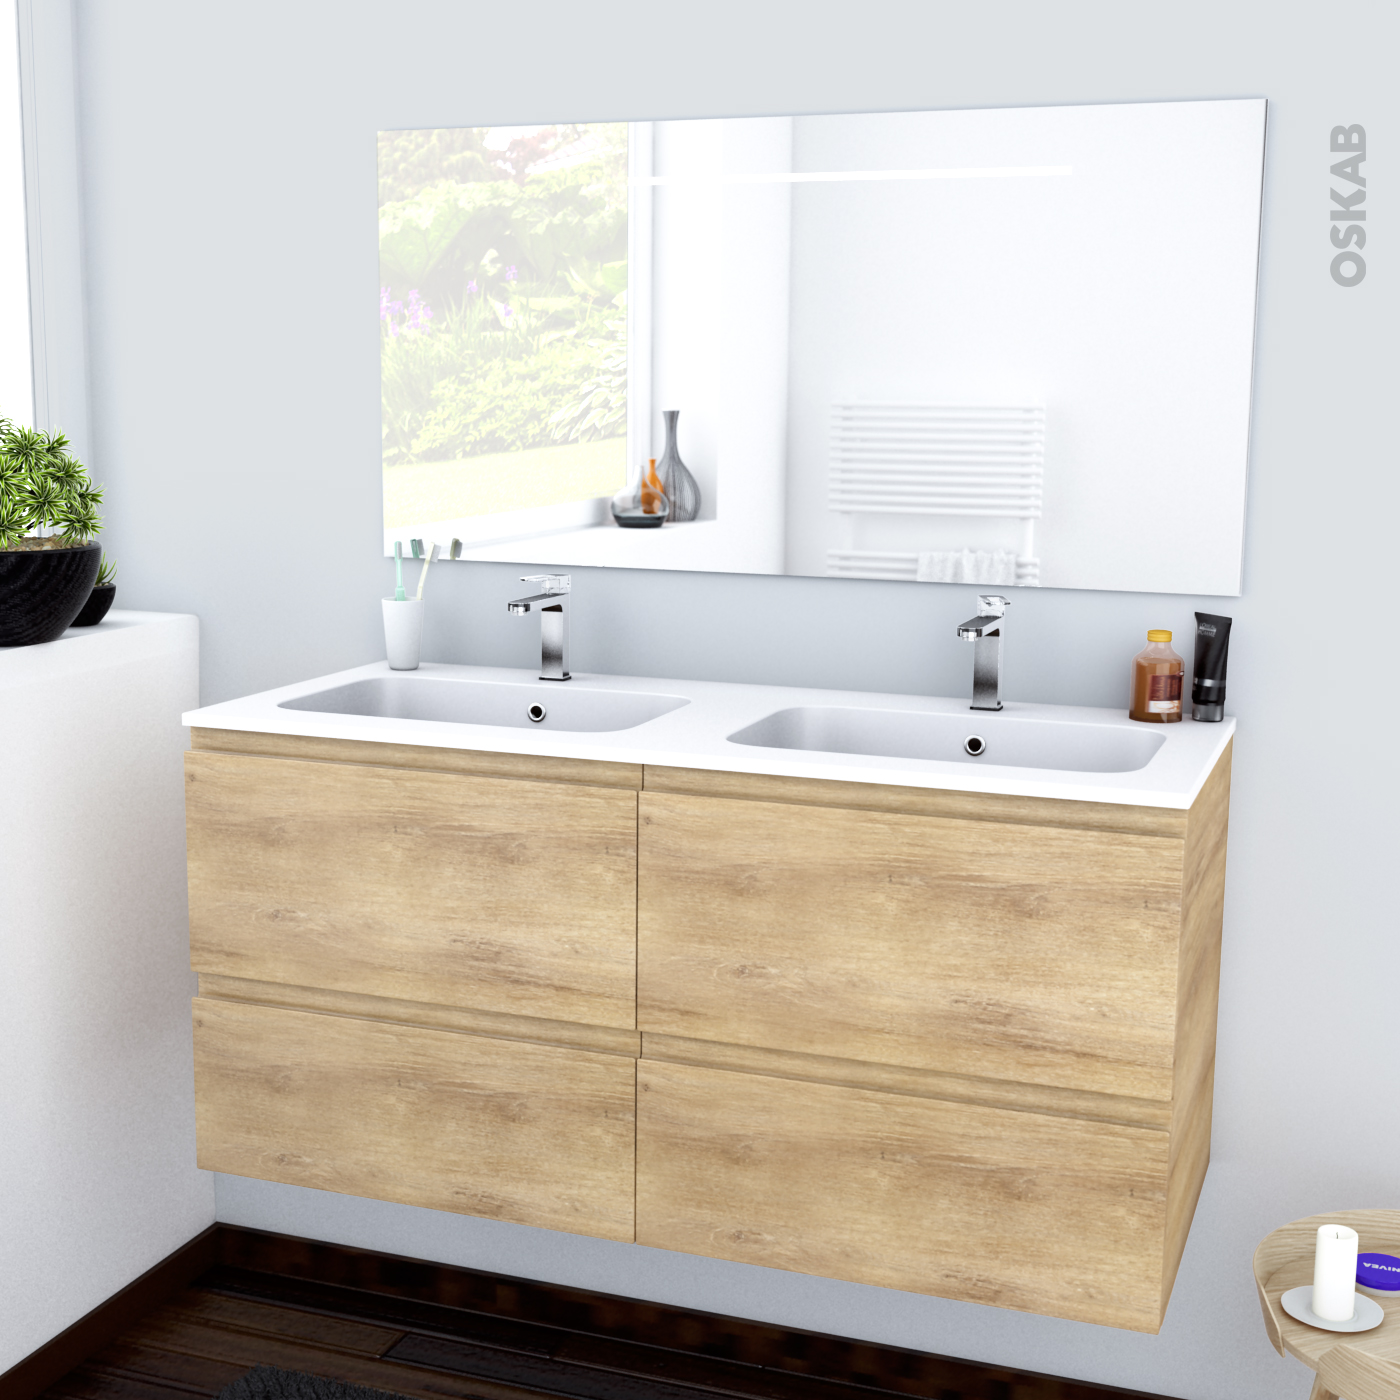 Lavabo double vasque retro simple beliani meuble meubles for Meubles double vasque salle de bain